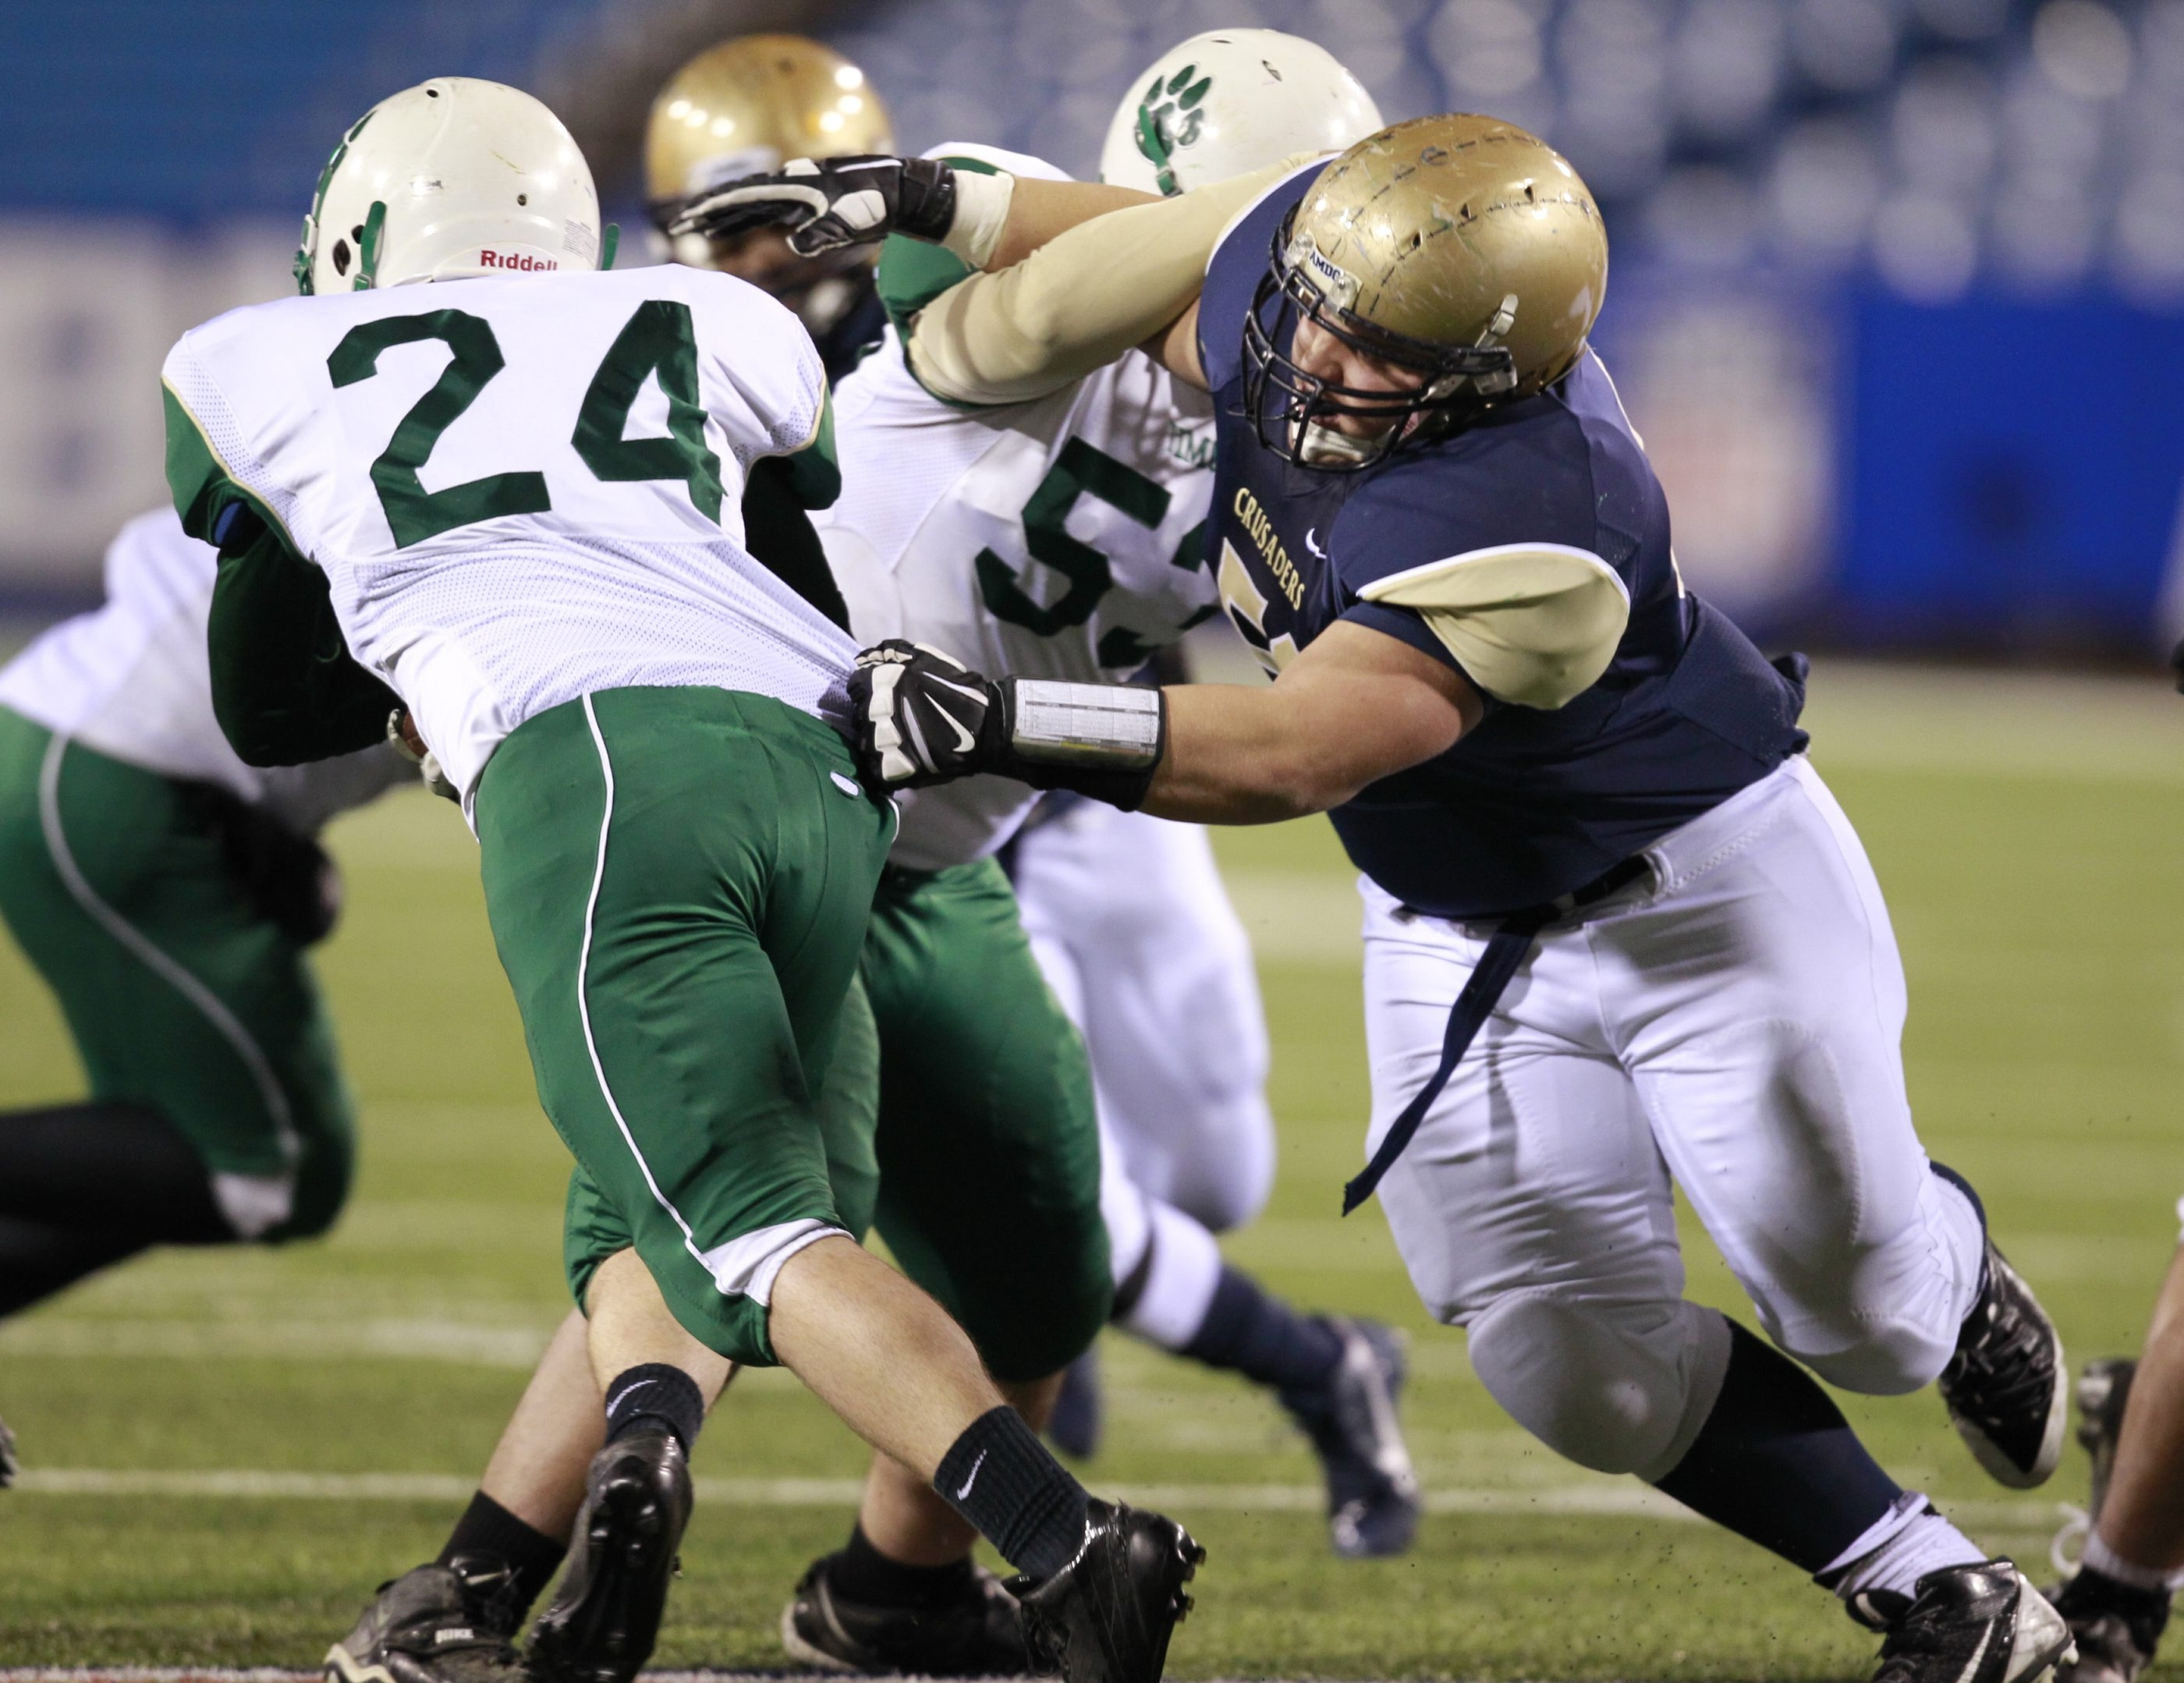 David Koeppel of Canisius, right, reaches to tackle Brady King of Bishop Timon-St. Jude during their Monsignor Martin Association semifinal. The Crusaders will meet  St. Joe's for the MMA title next Thursday.